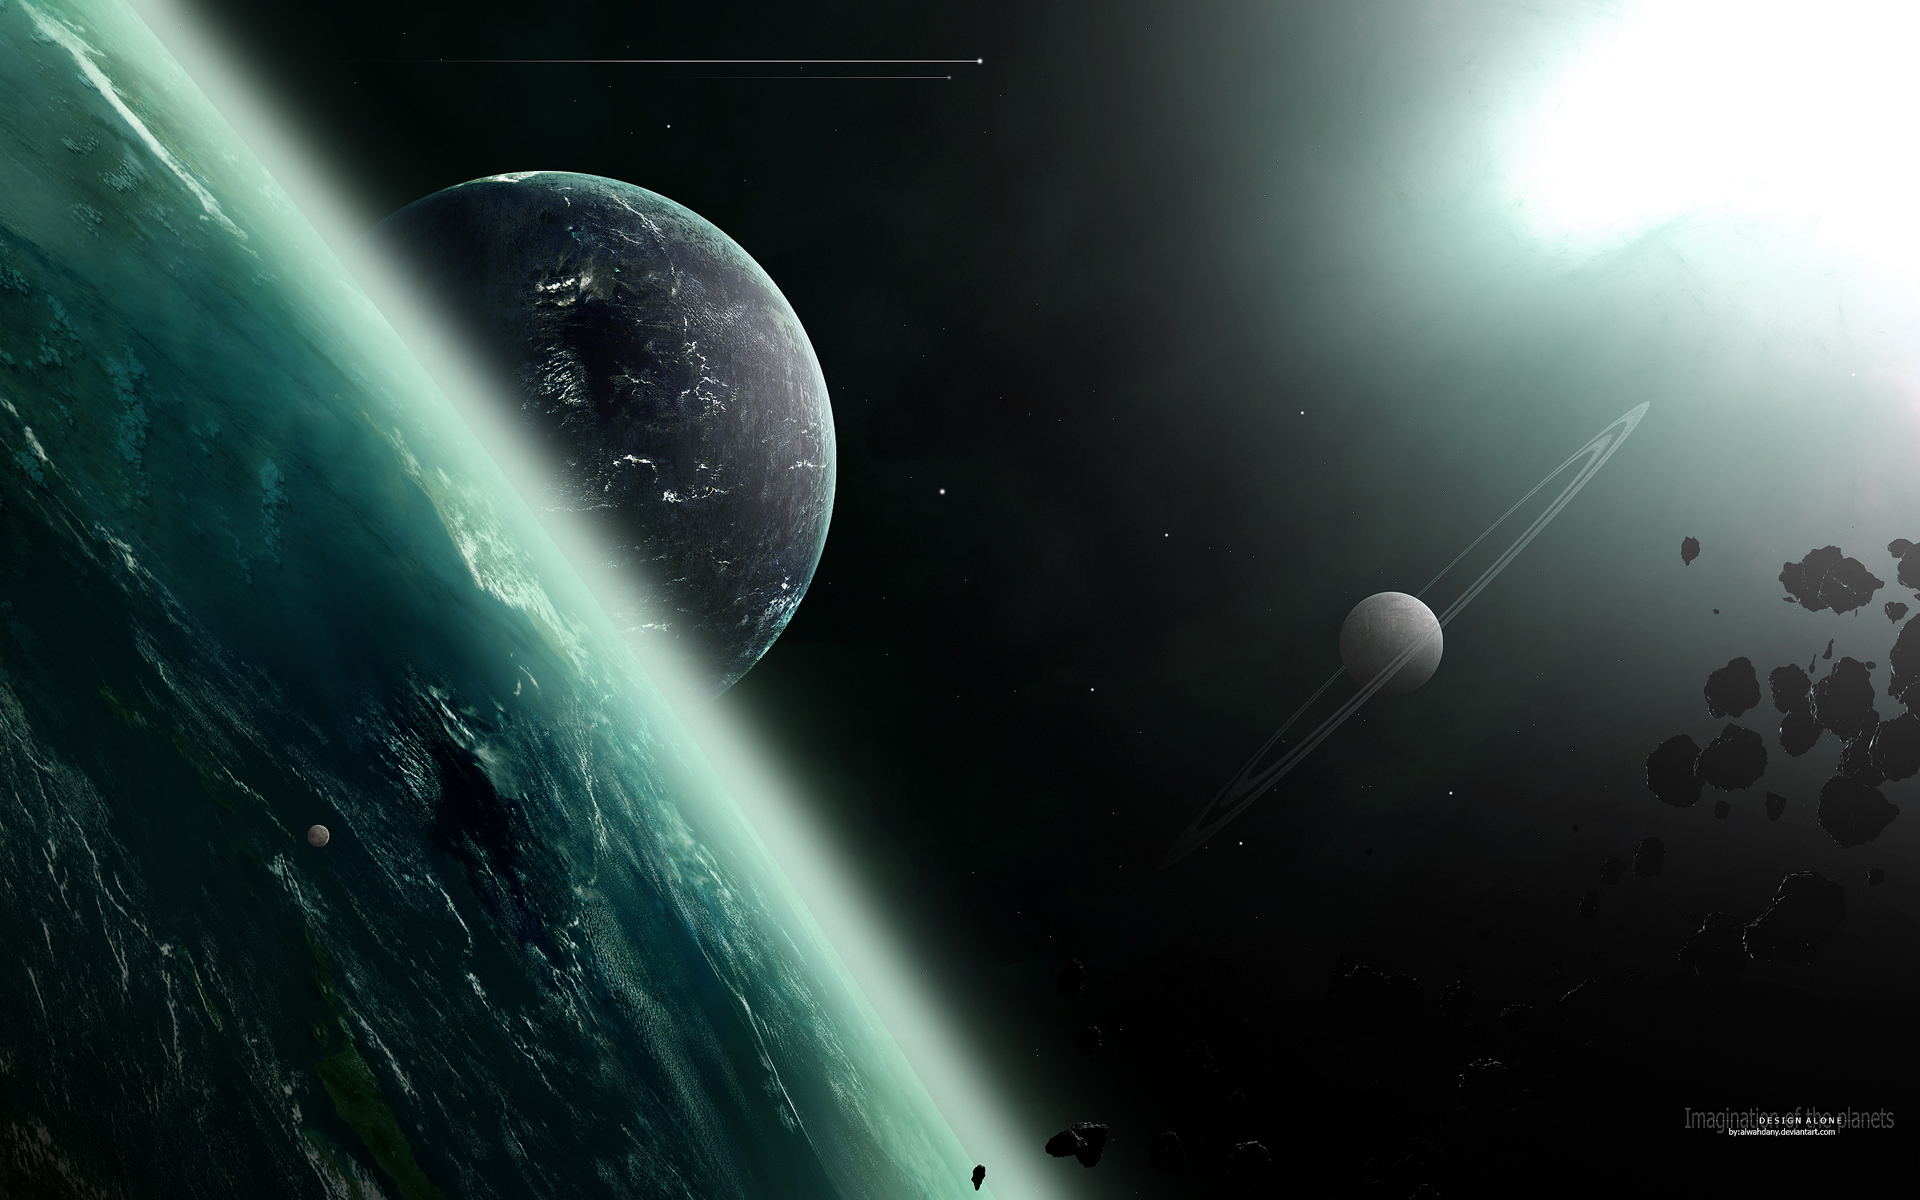 Imagination of the planets